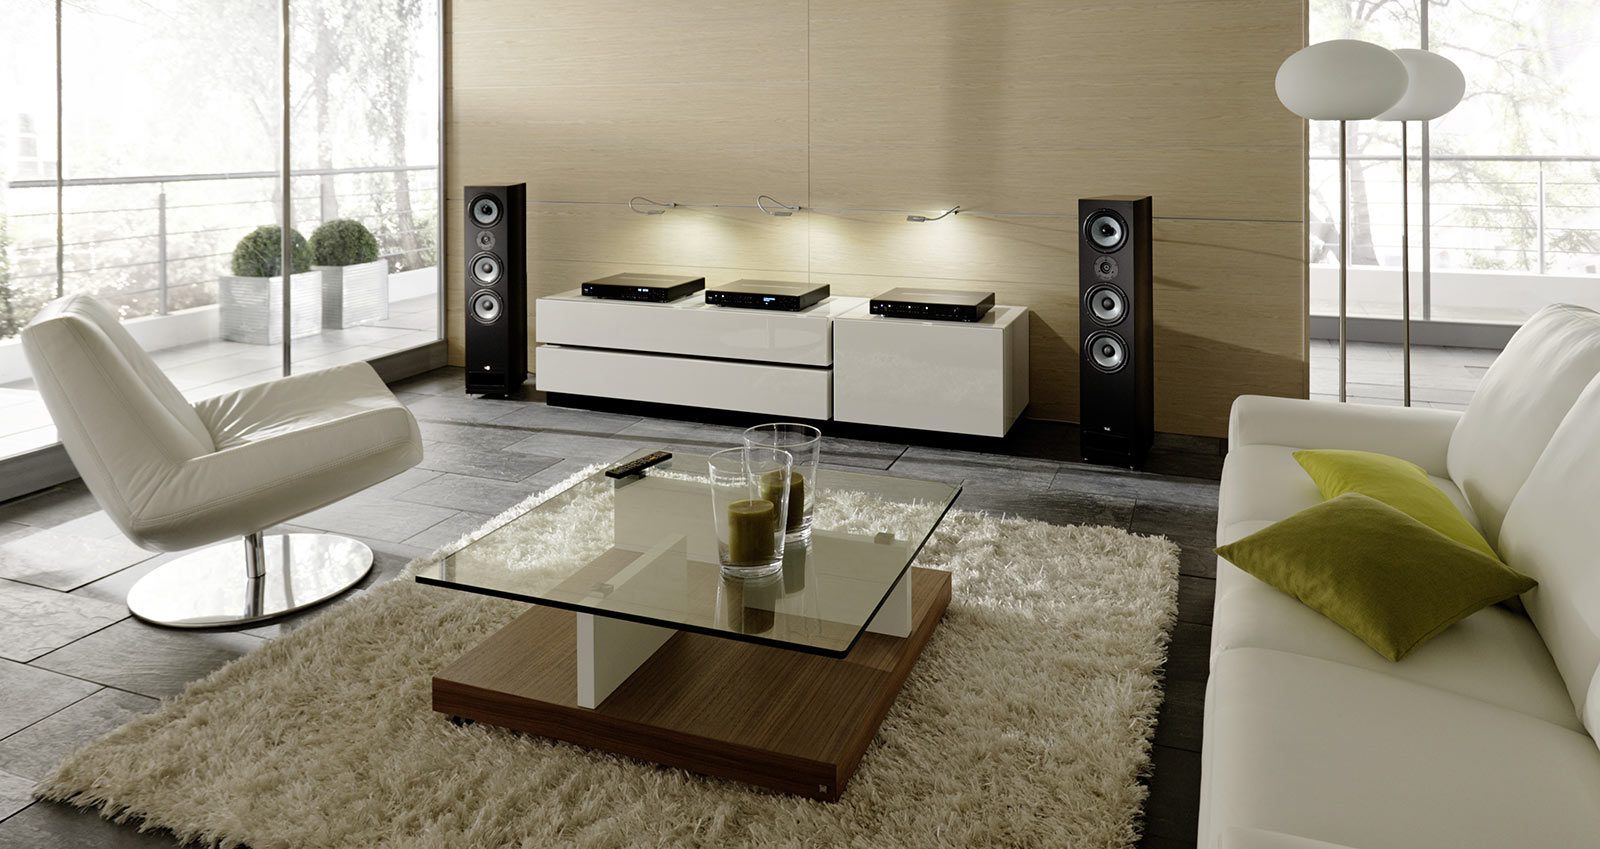 Mostant l audioworld a is audioworld - Home audio system design ...